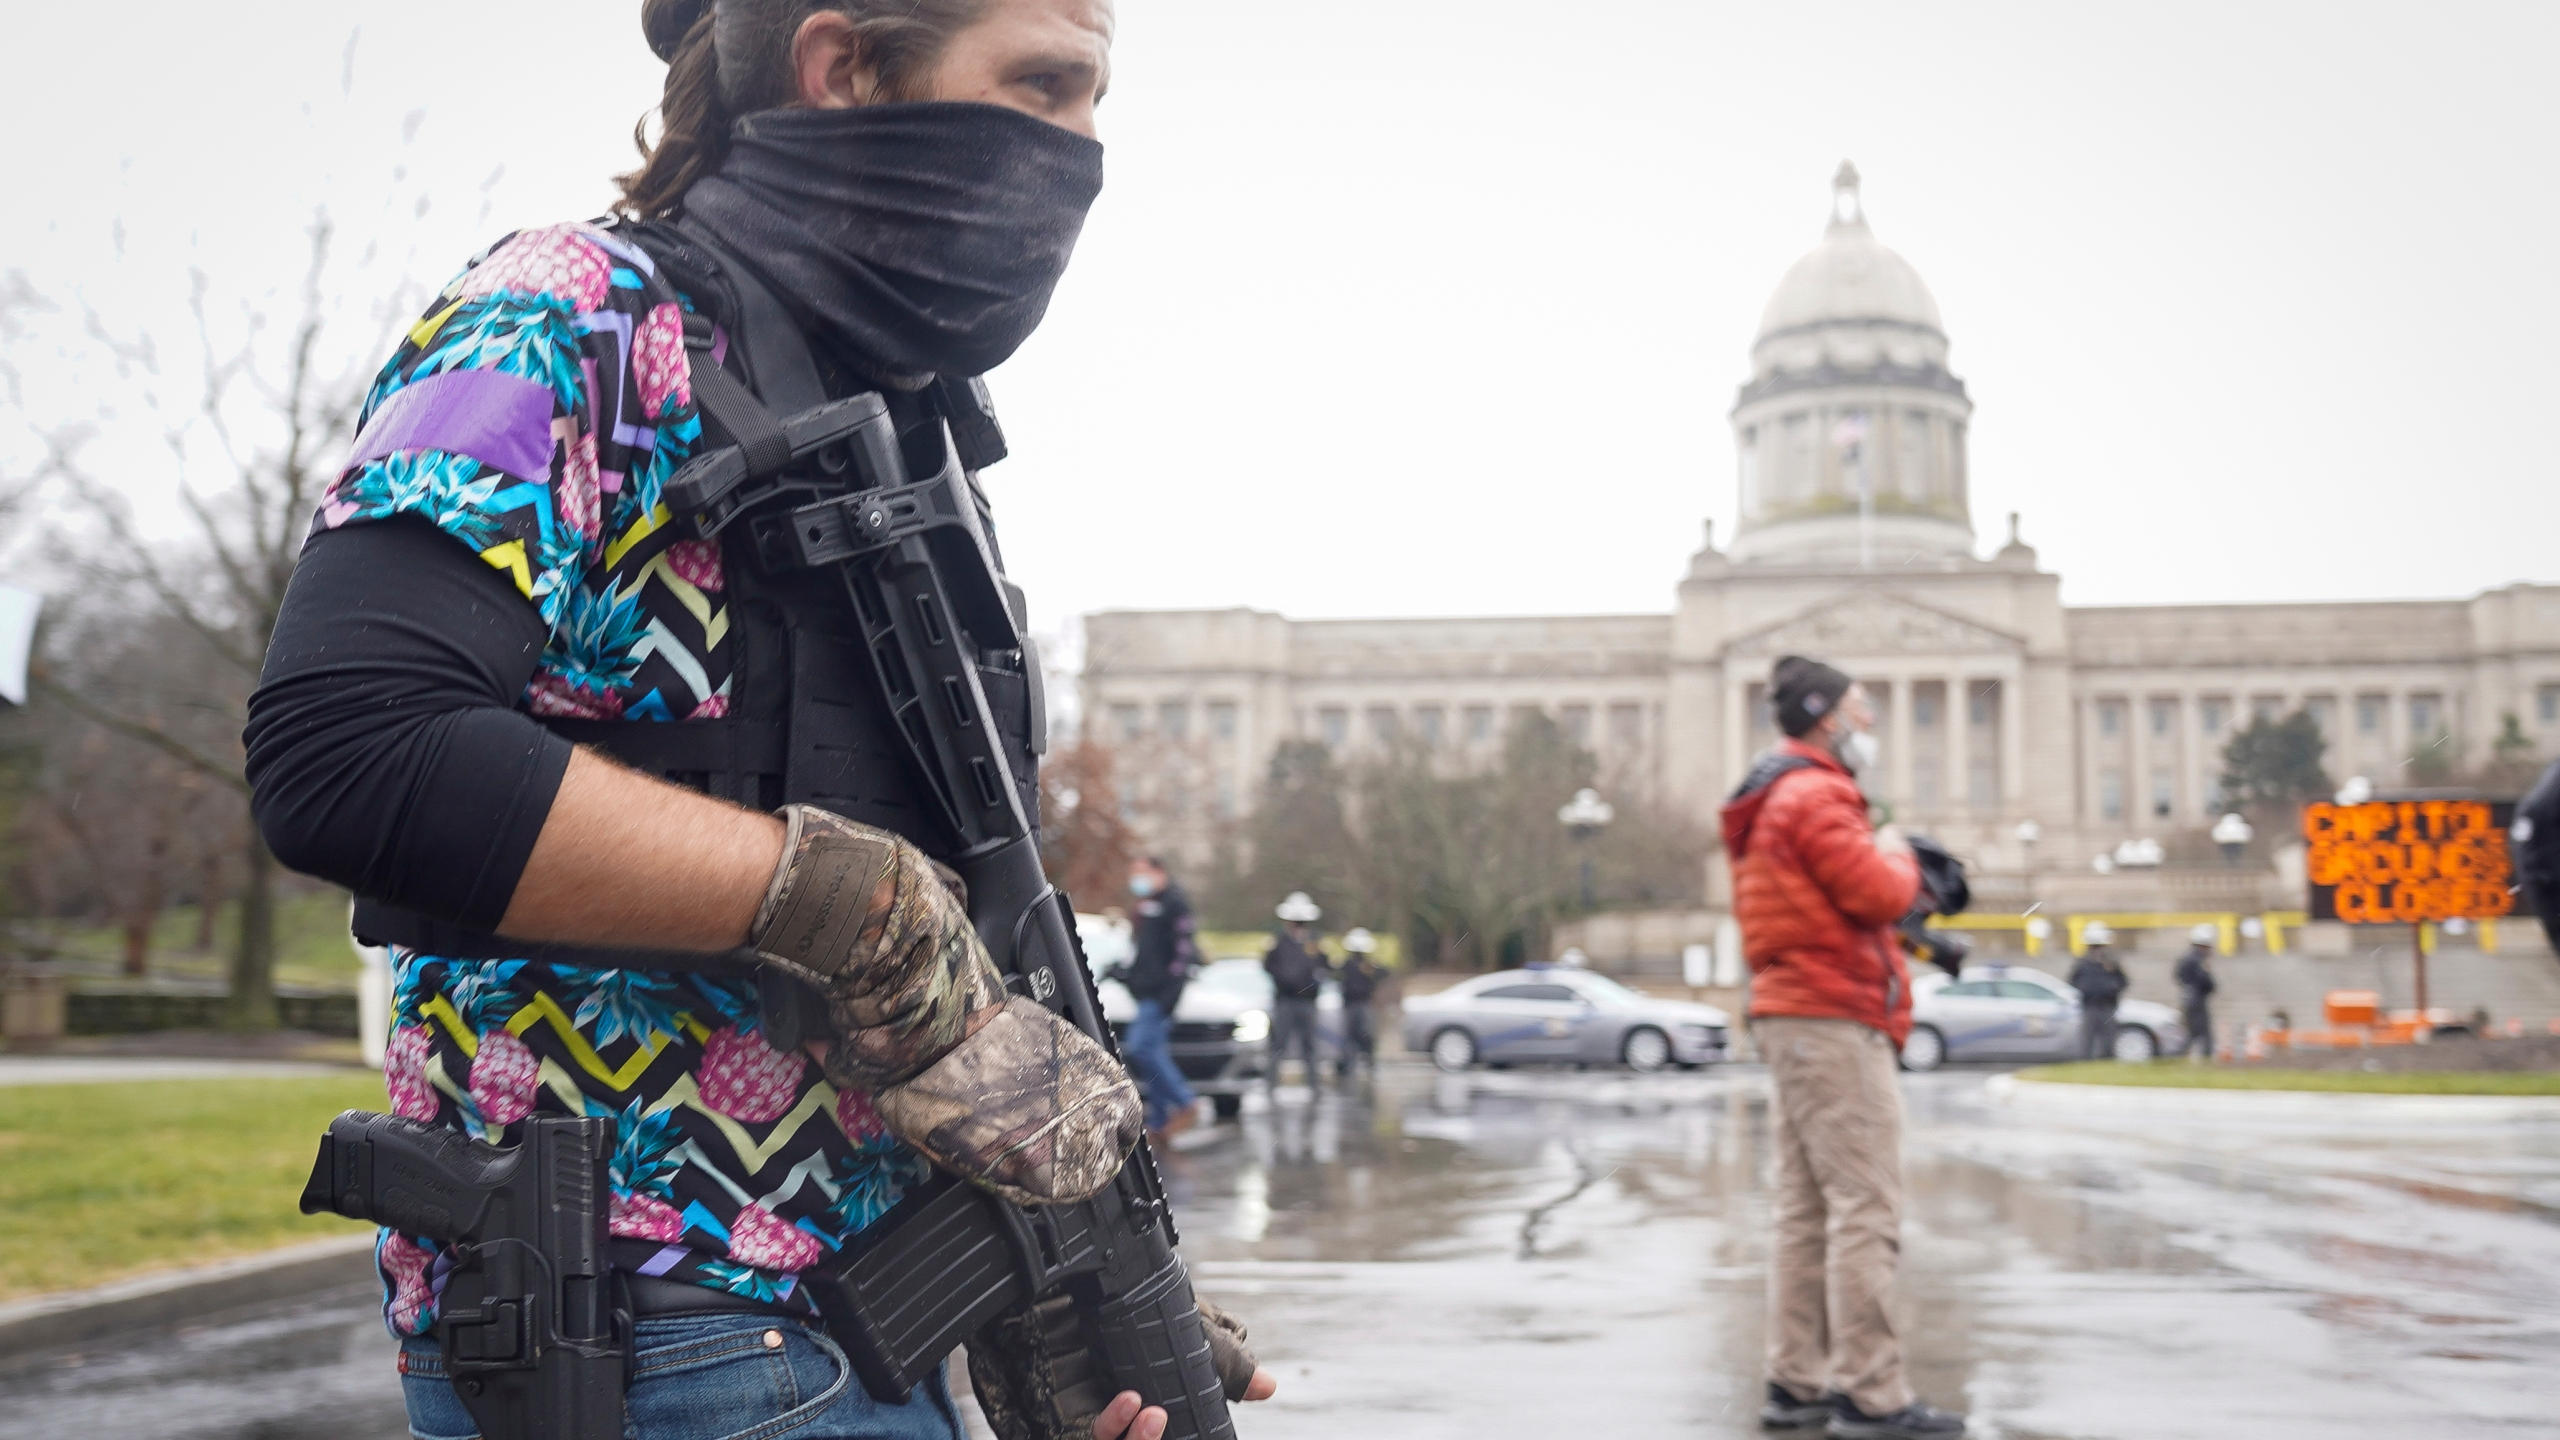 A Black Lives Matter activist carrying a semi-automatic rifle walks outside at the Capitol building in Frankfort, Ky., Wednesday, Jan 17, 2021. (AP Photo/Bryan Woolston)